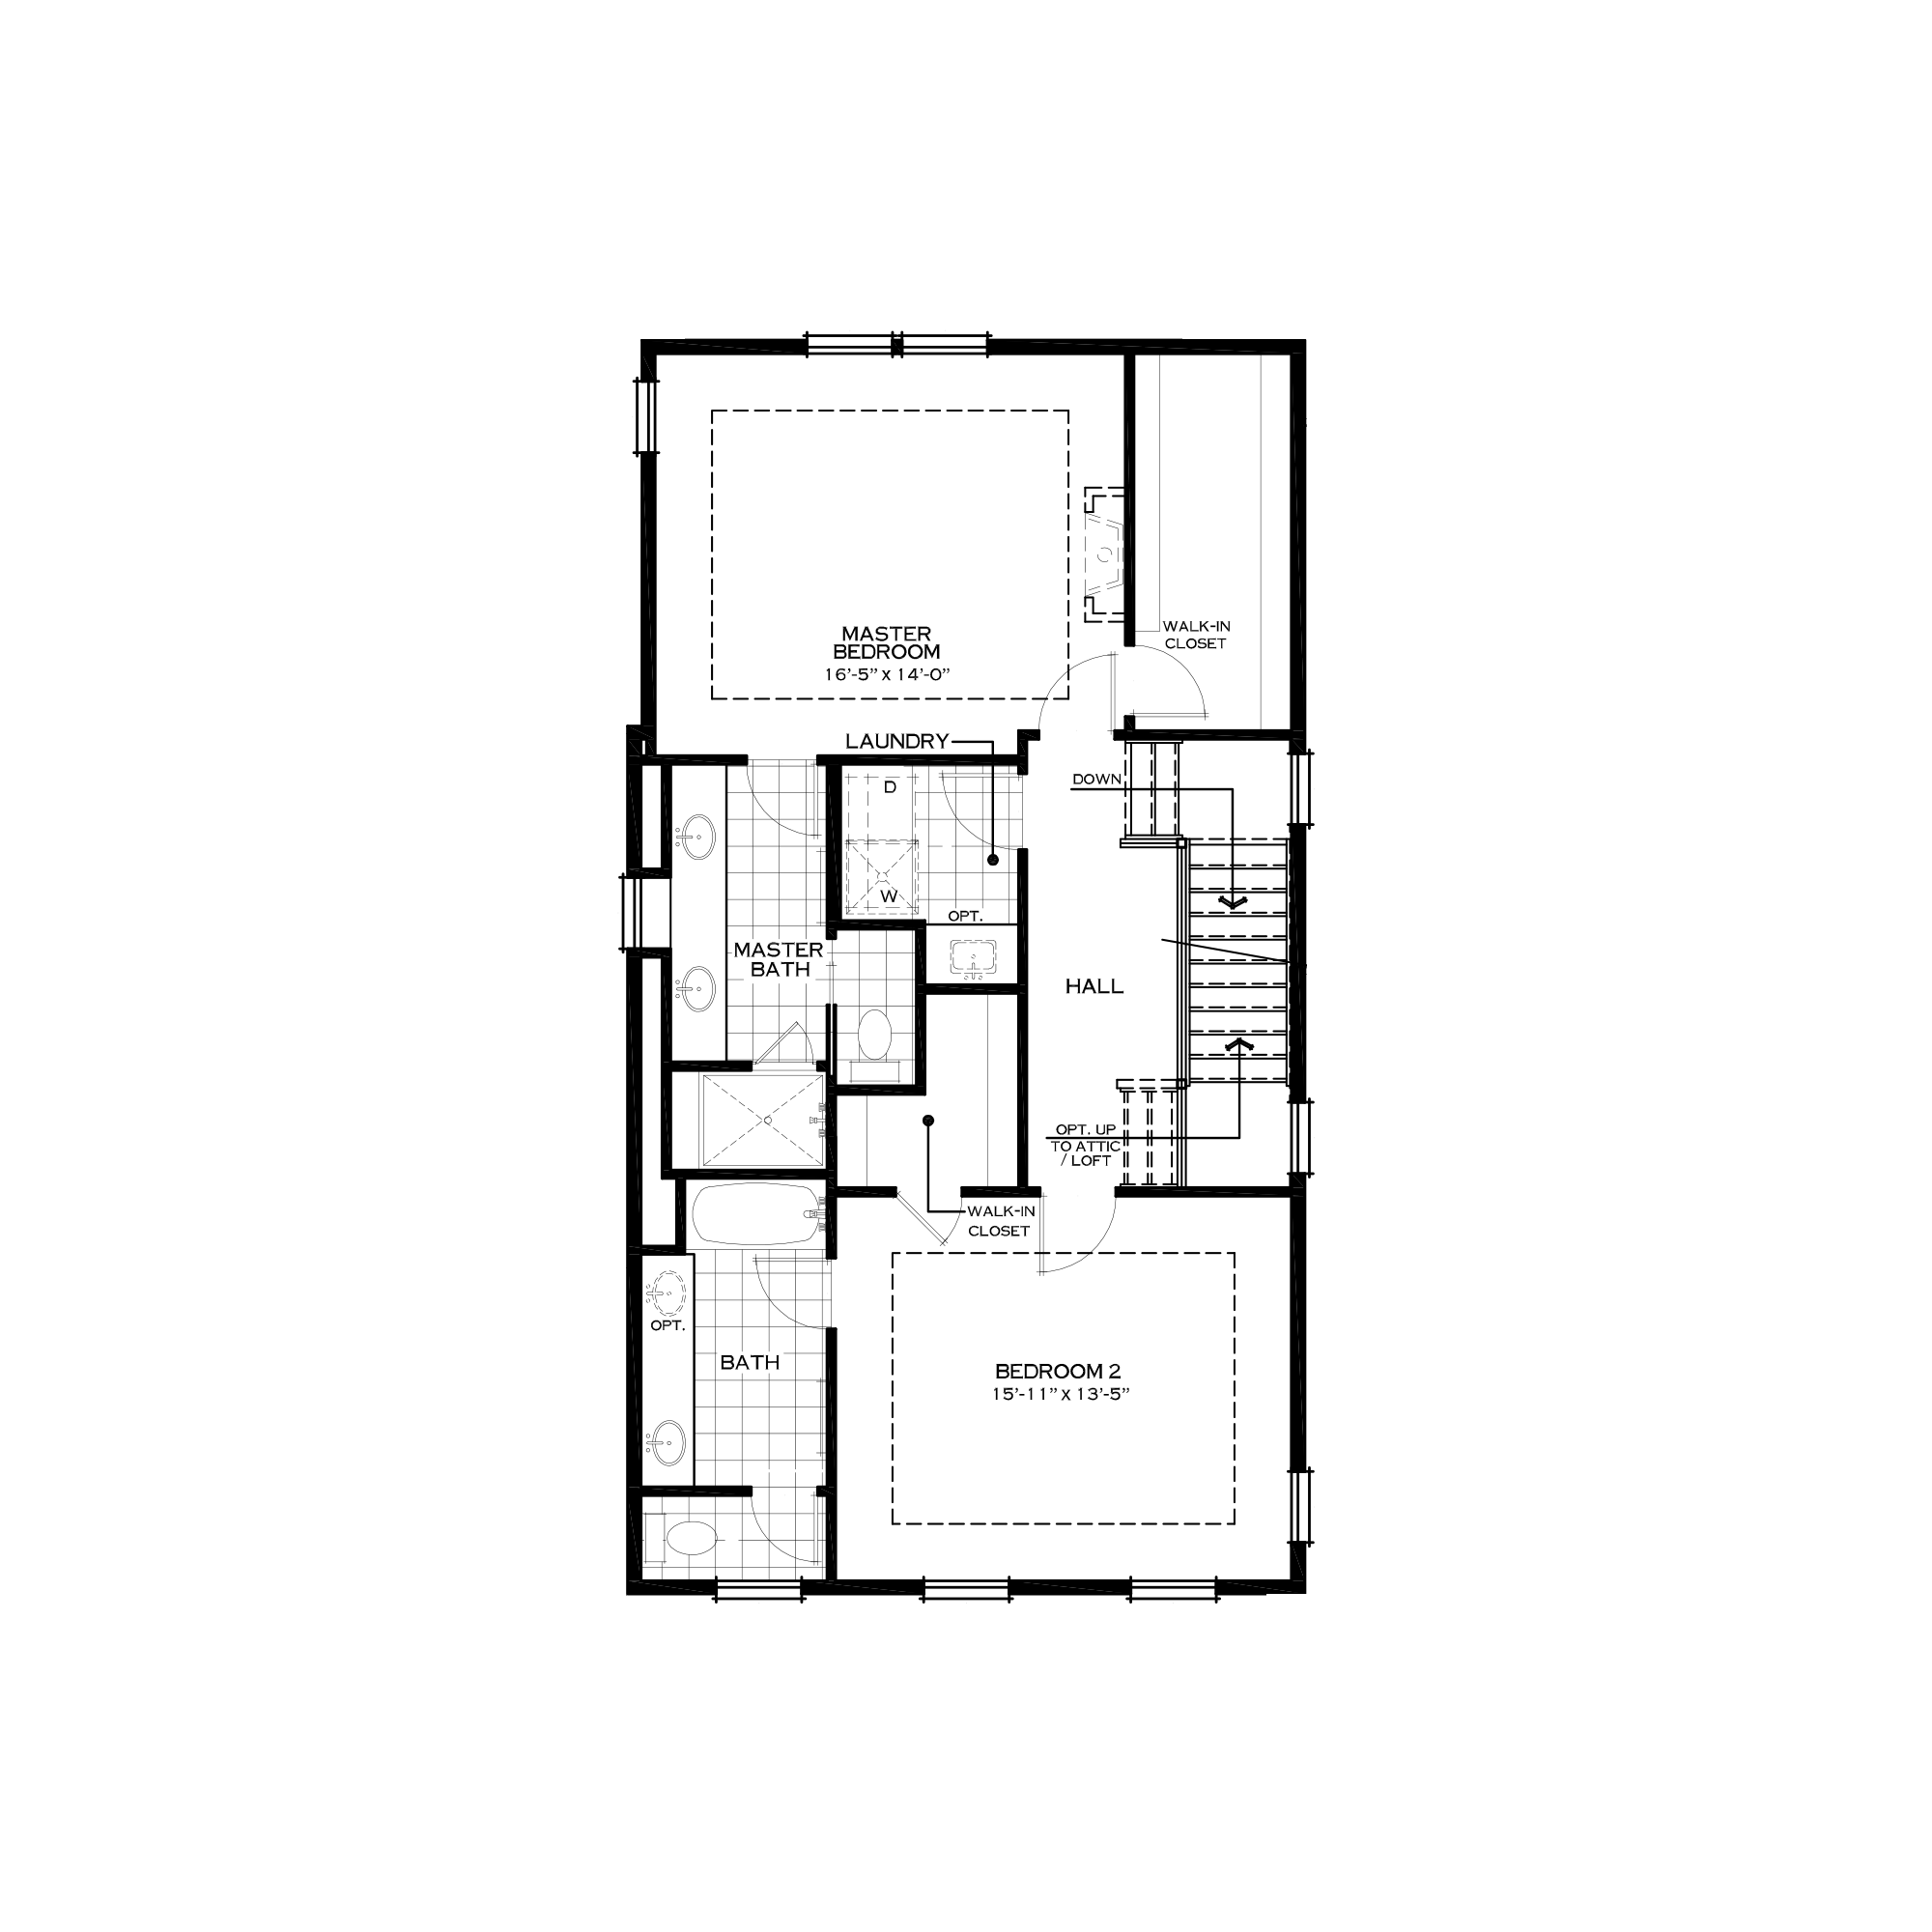 Optional Third Floor with Two Bedrooms